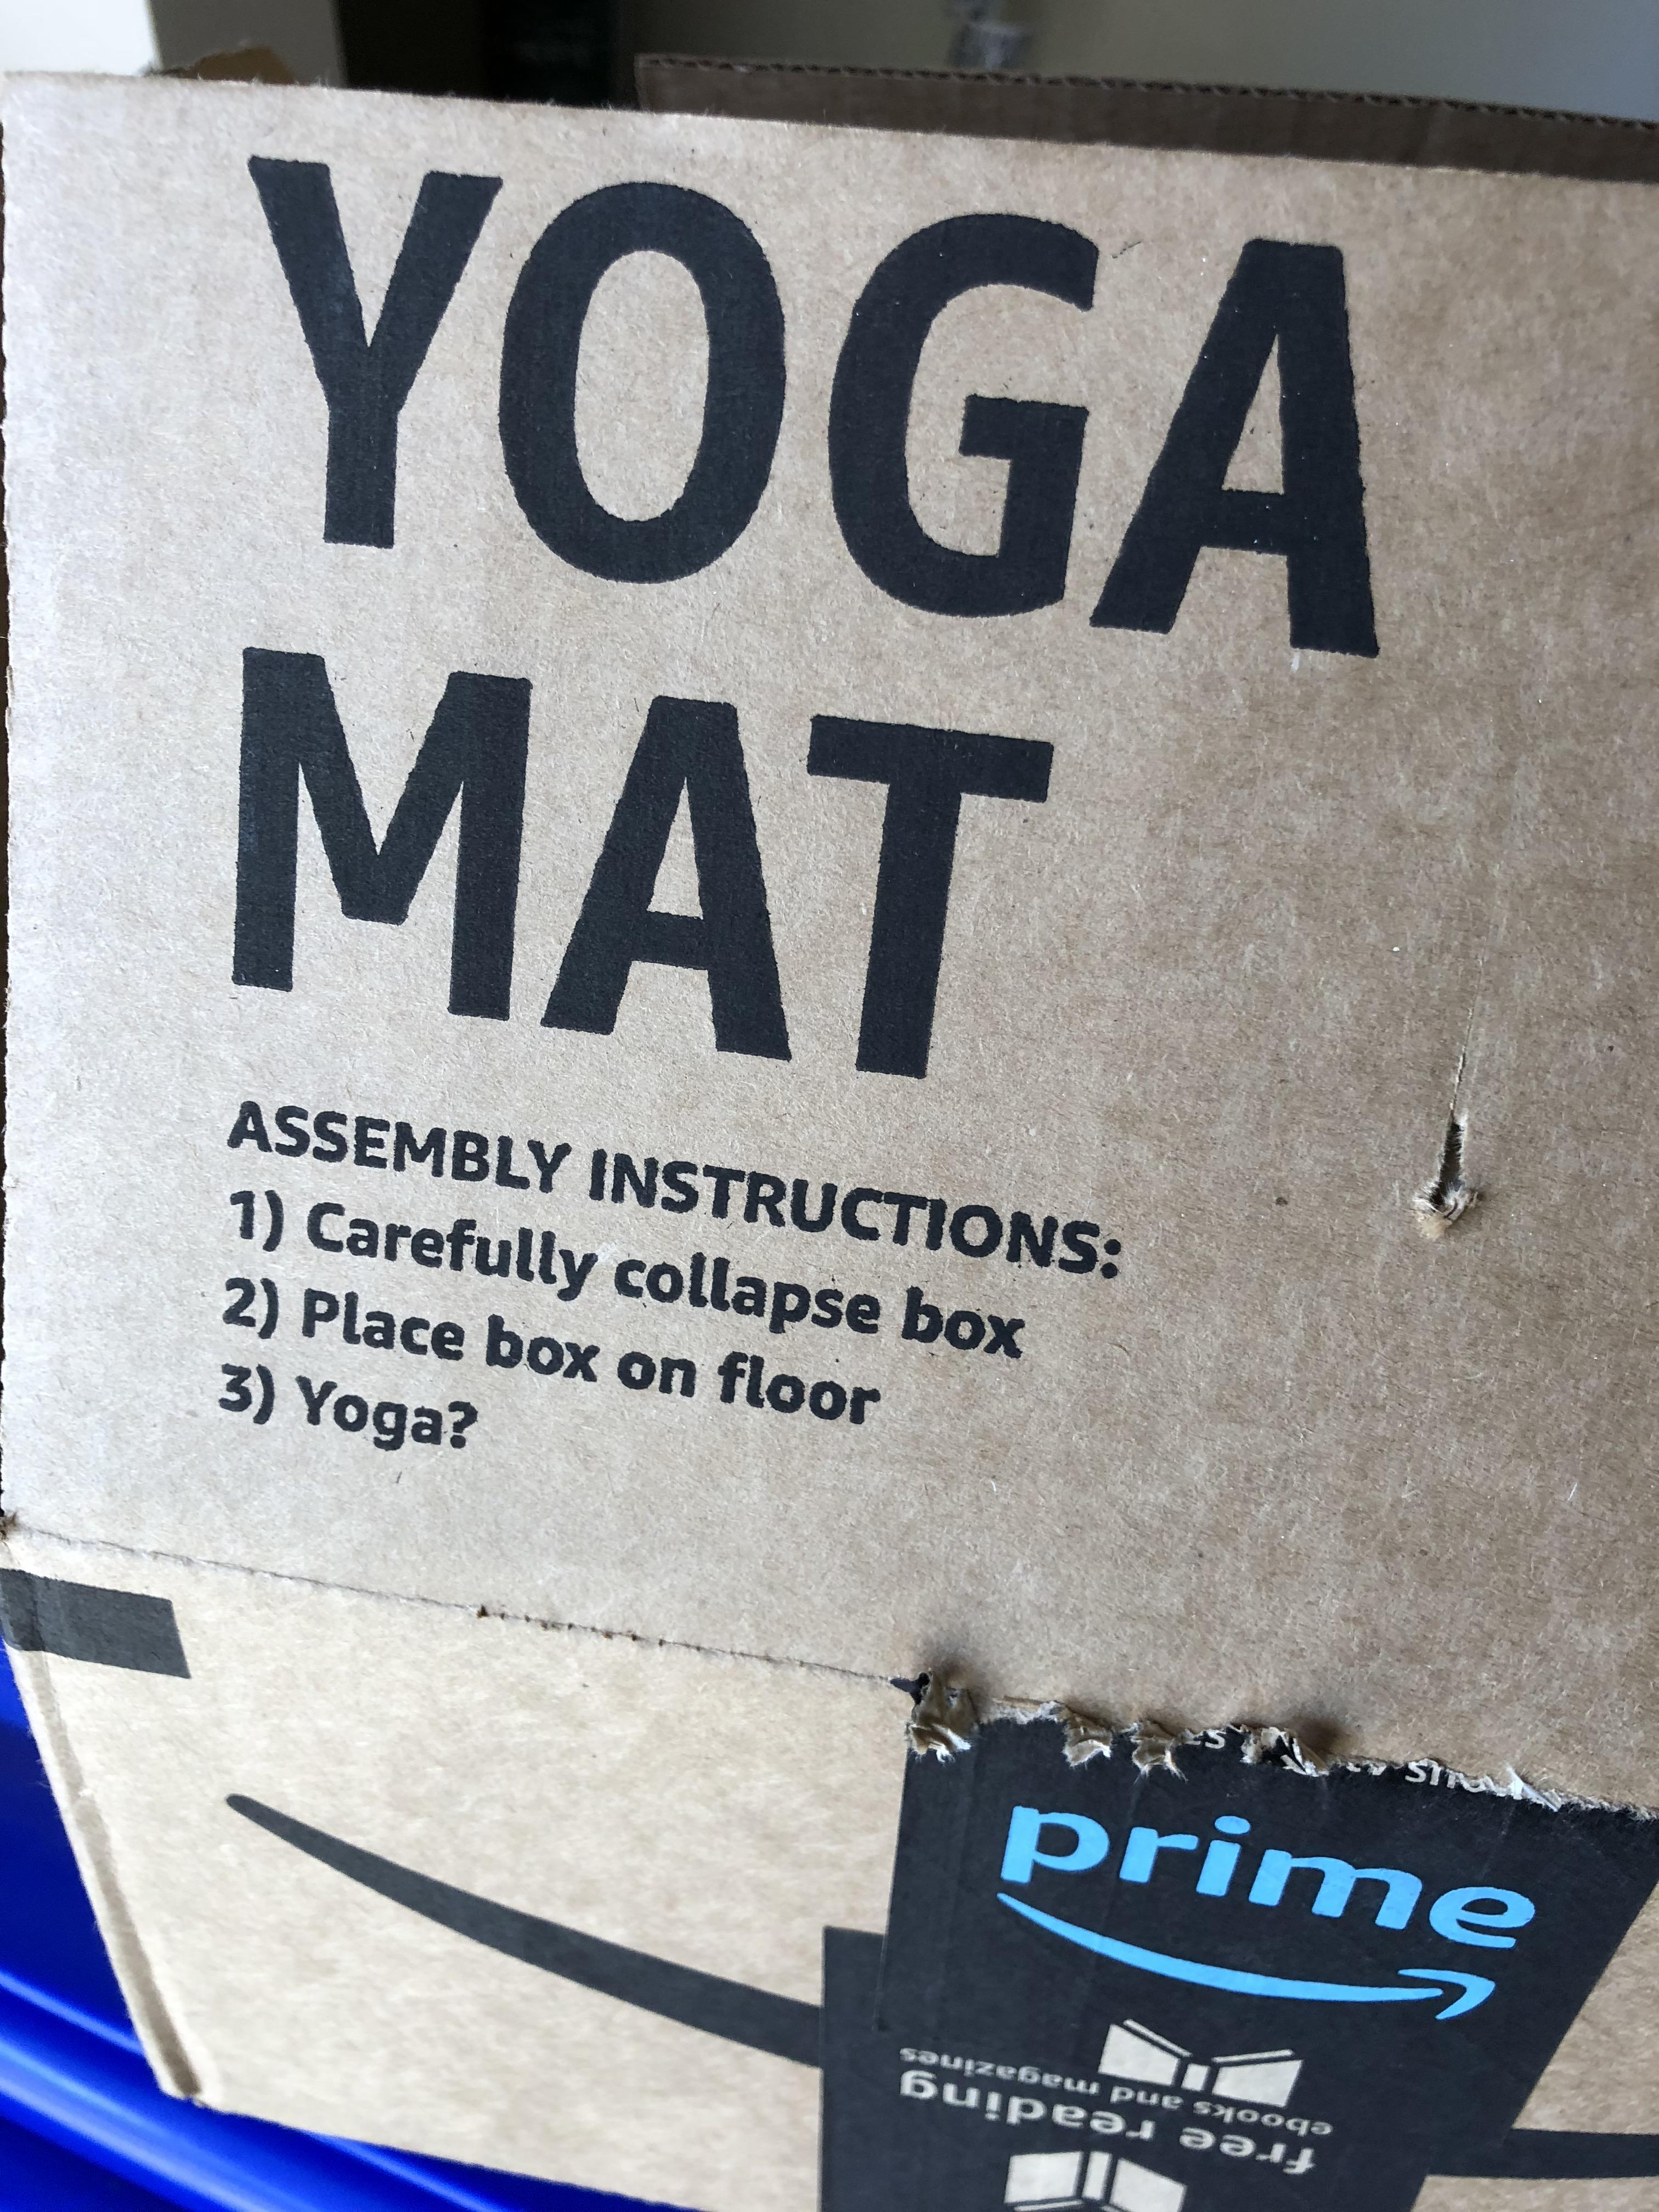 Amazon Yogamatte My Amazon Box Has Instructions On How To Make It Into A Yoga Mat